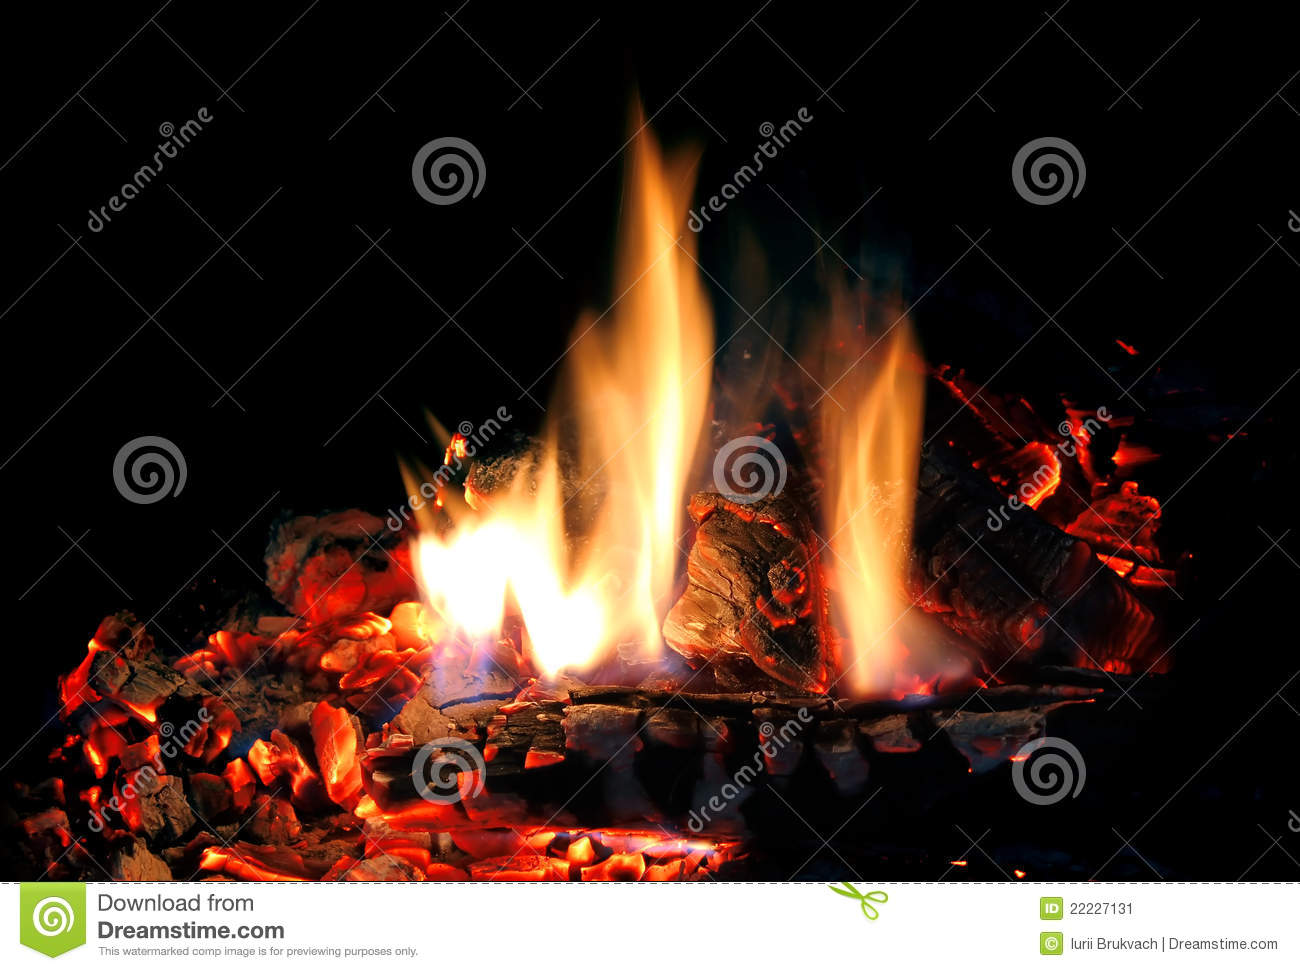 feuer im kamin stockbild bild 22227131. Black Bedroom Furniture Sets. Home Design Ideas